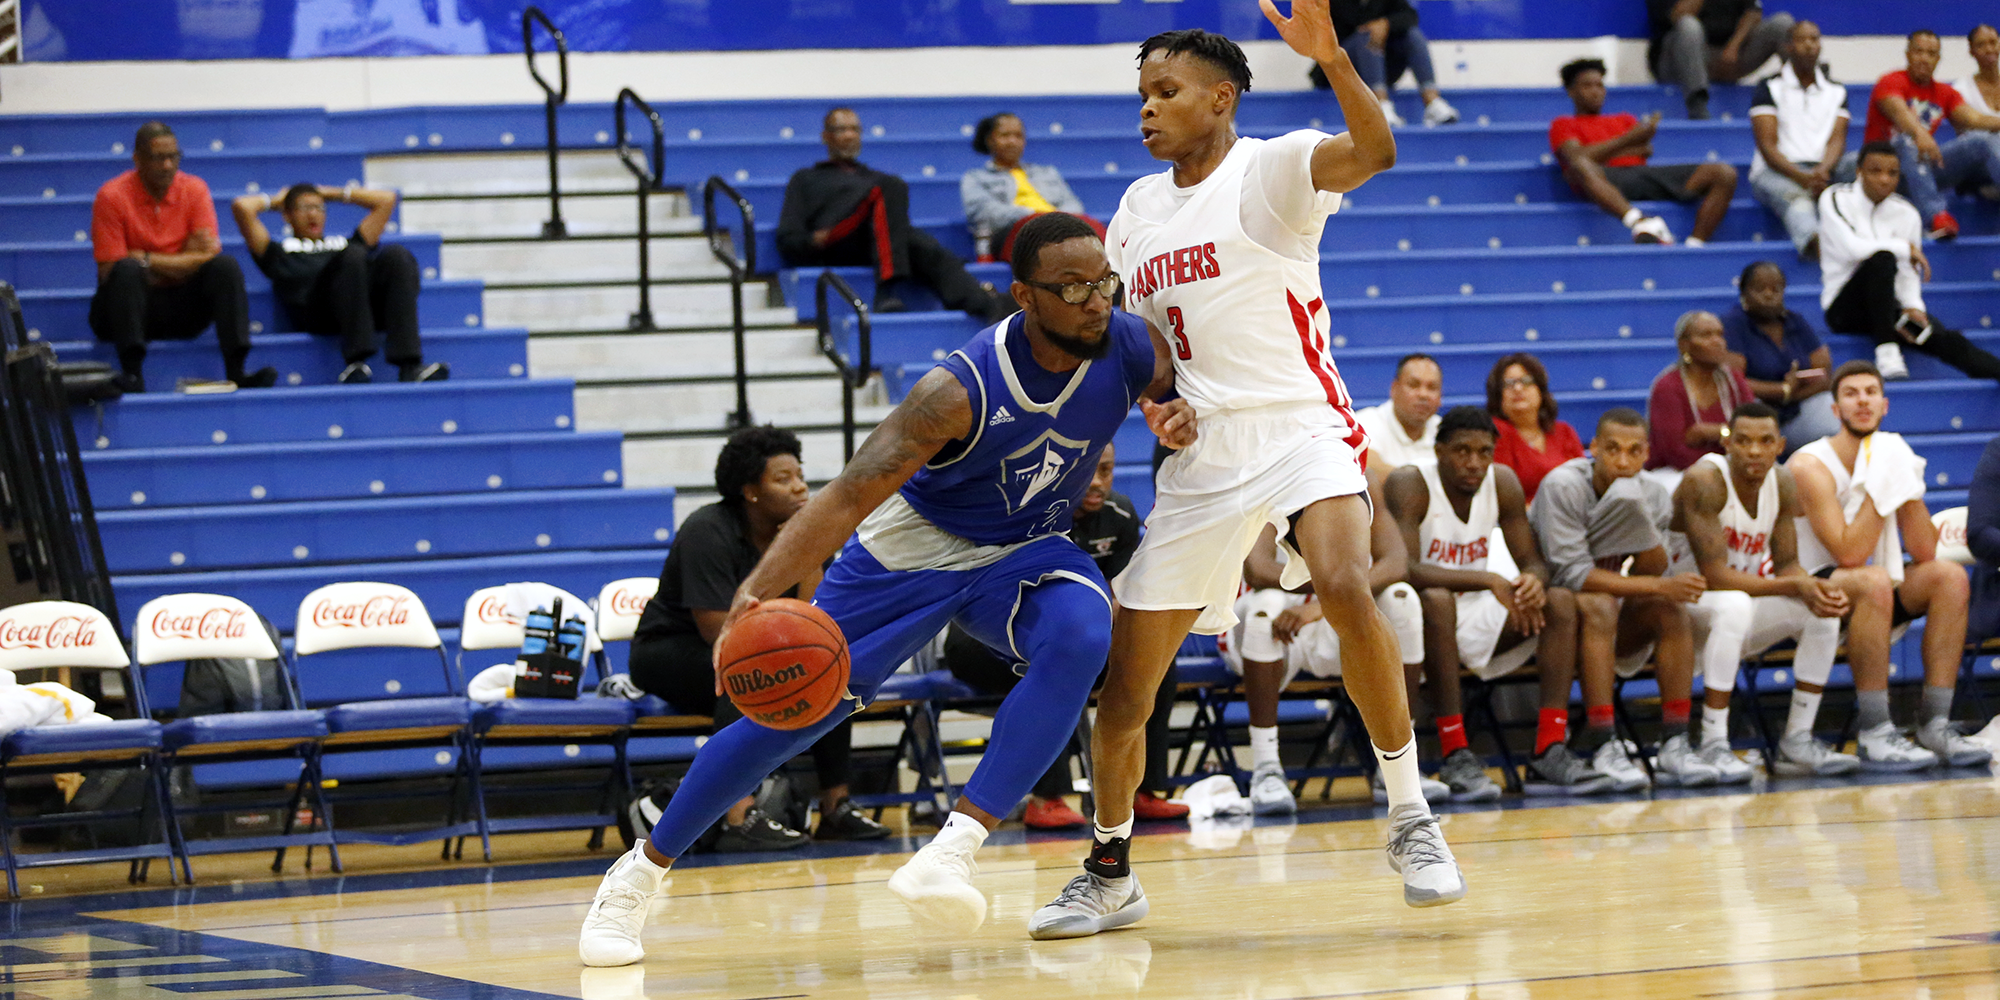 Men's Basketball Secures Season Opener with Late Second-Half Push